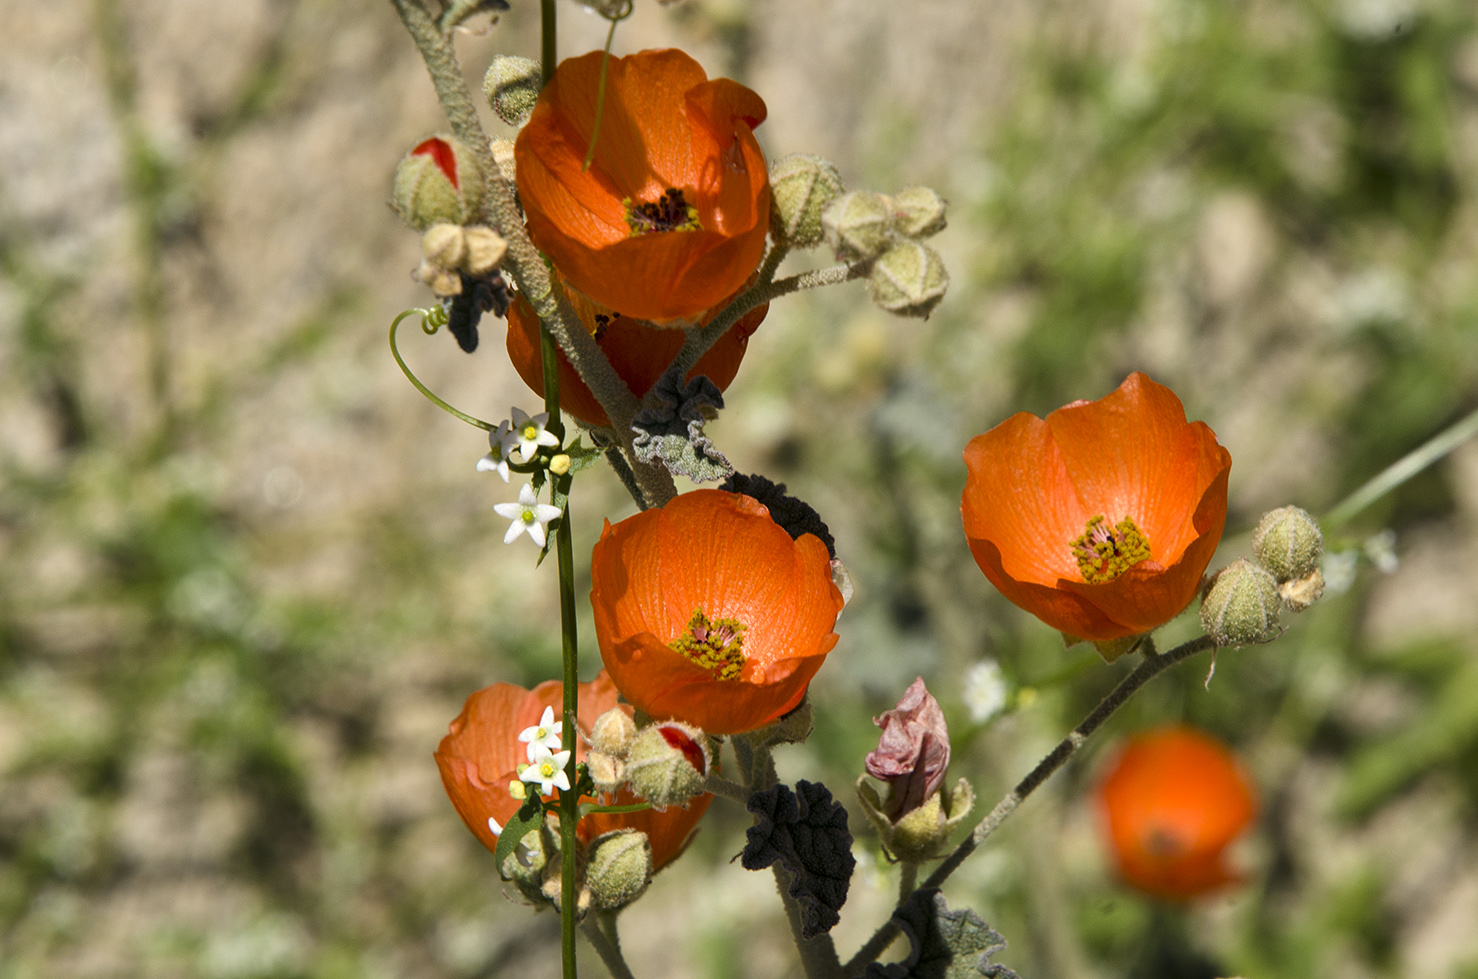 Joshua Tree National Park Wildflowers 16.jpg